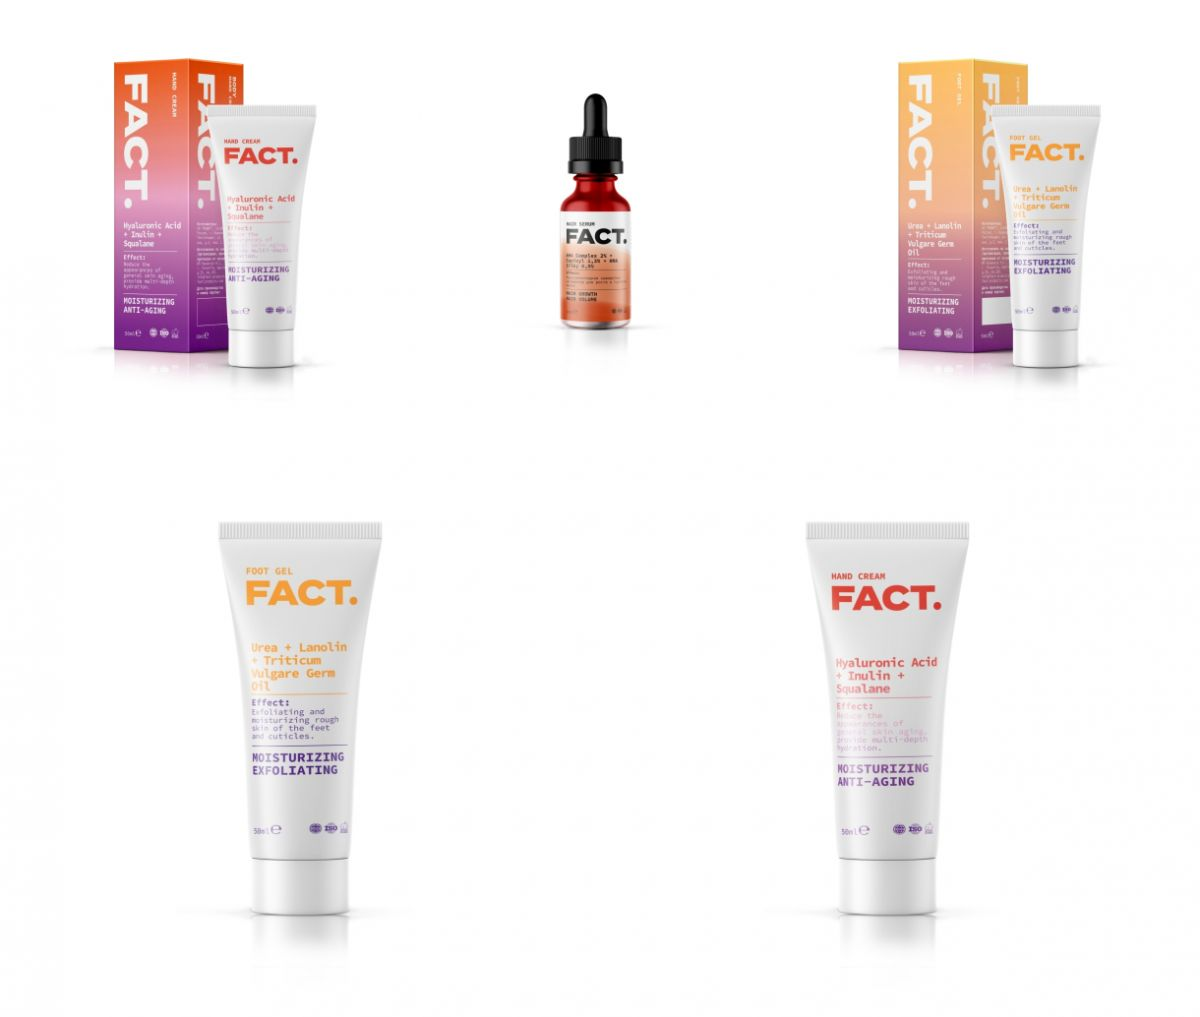 Pick of the week: новая линейка Body Care от FACT.